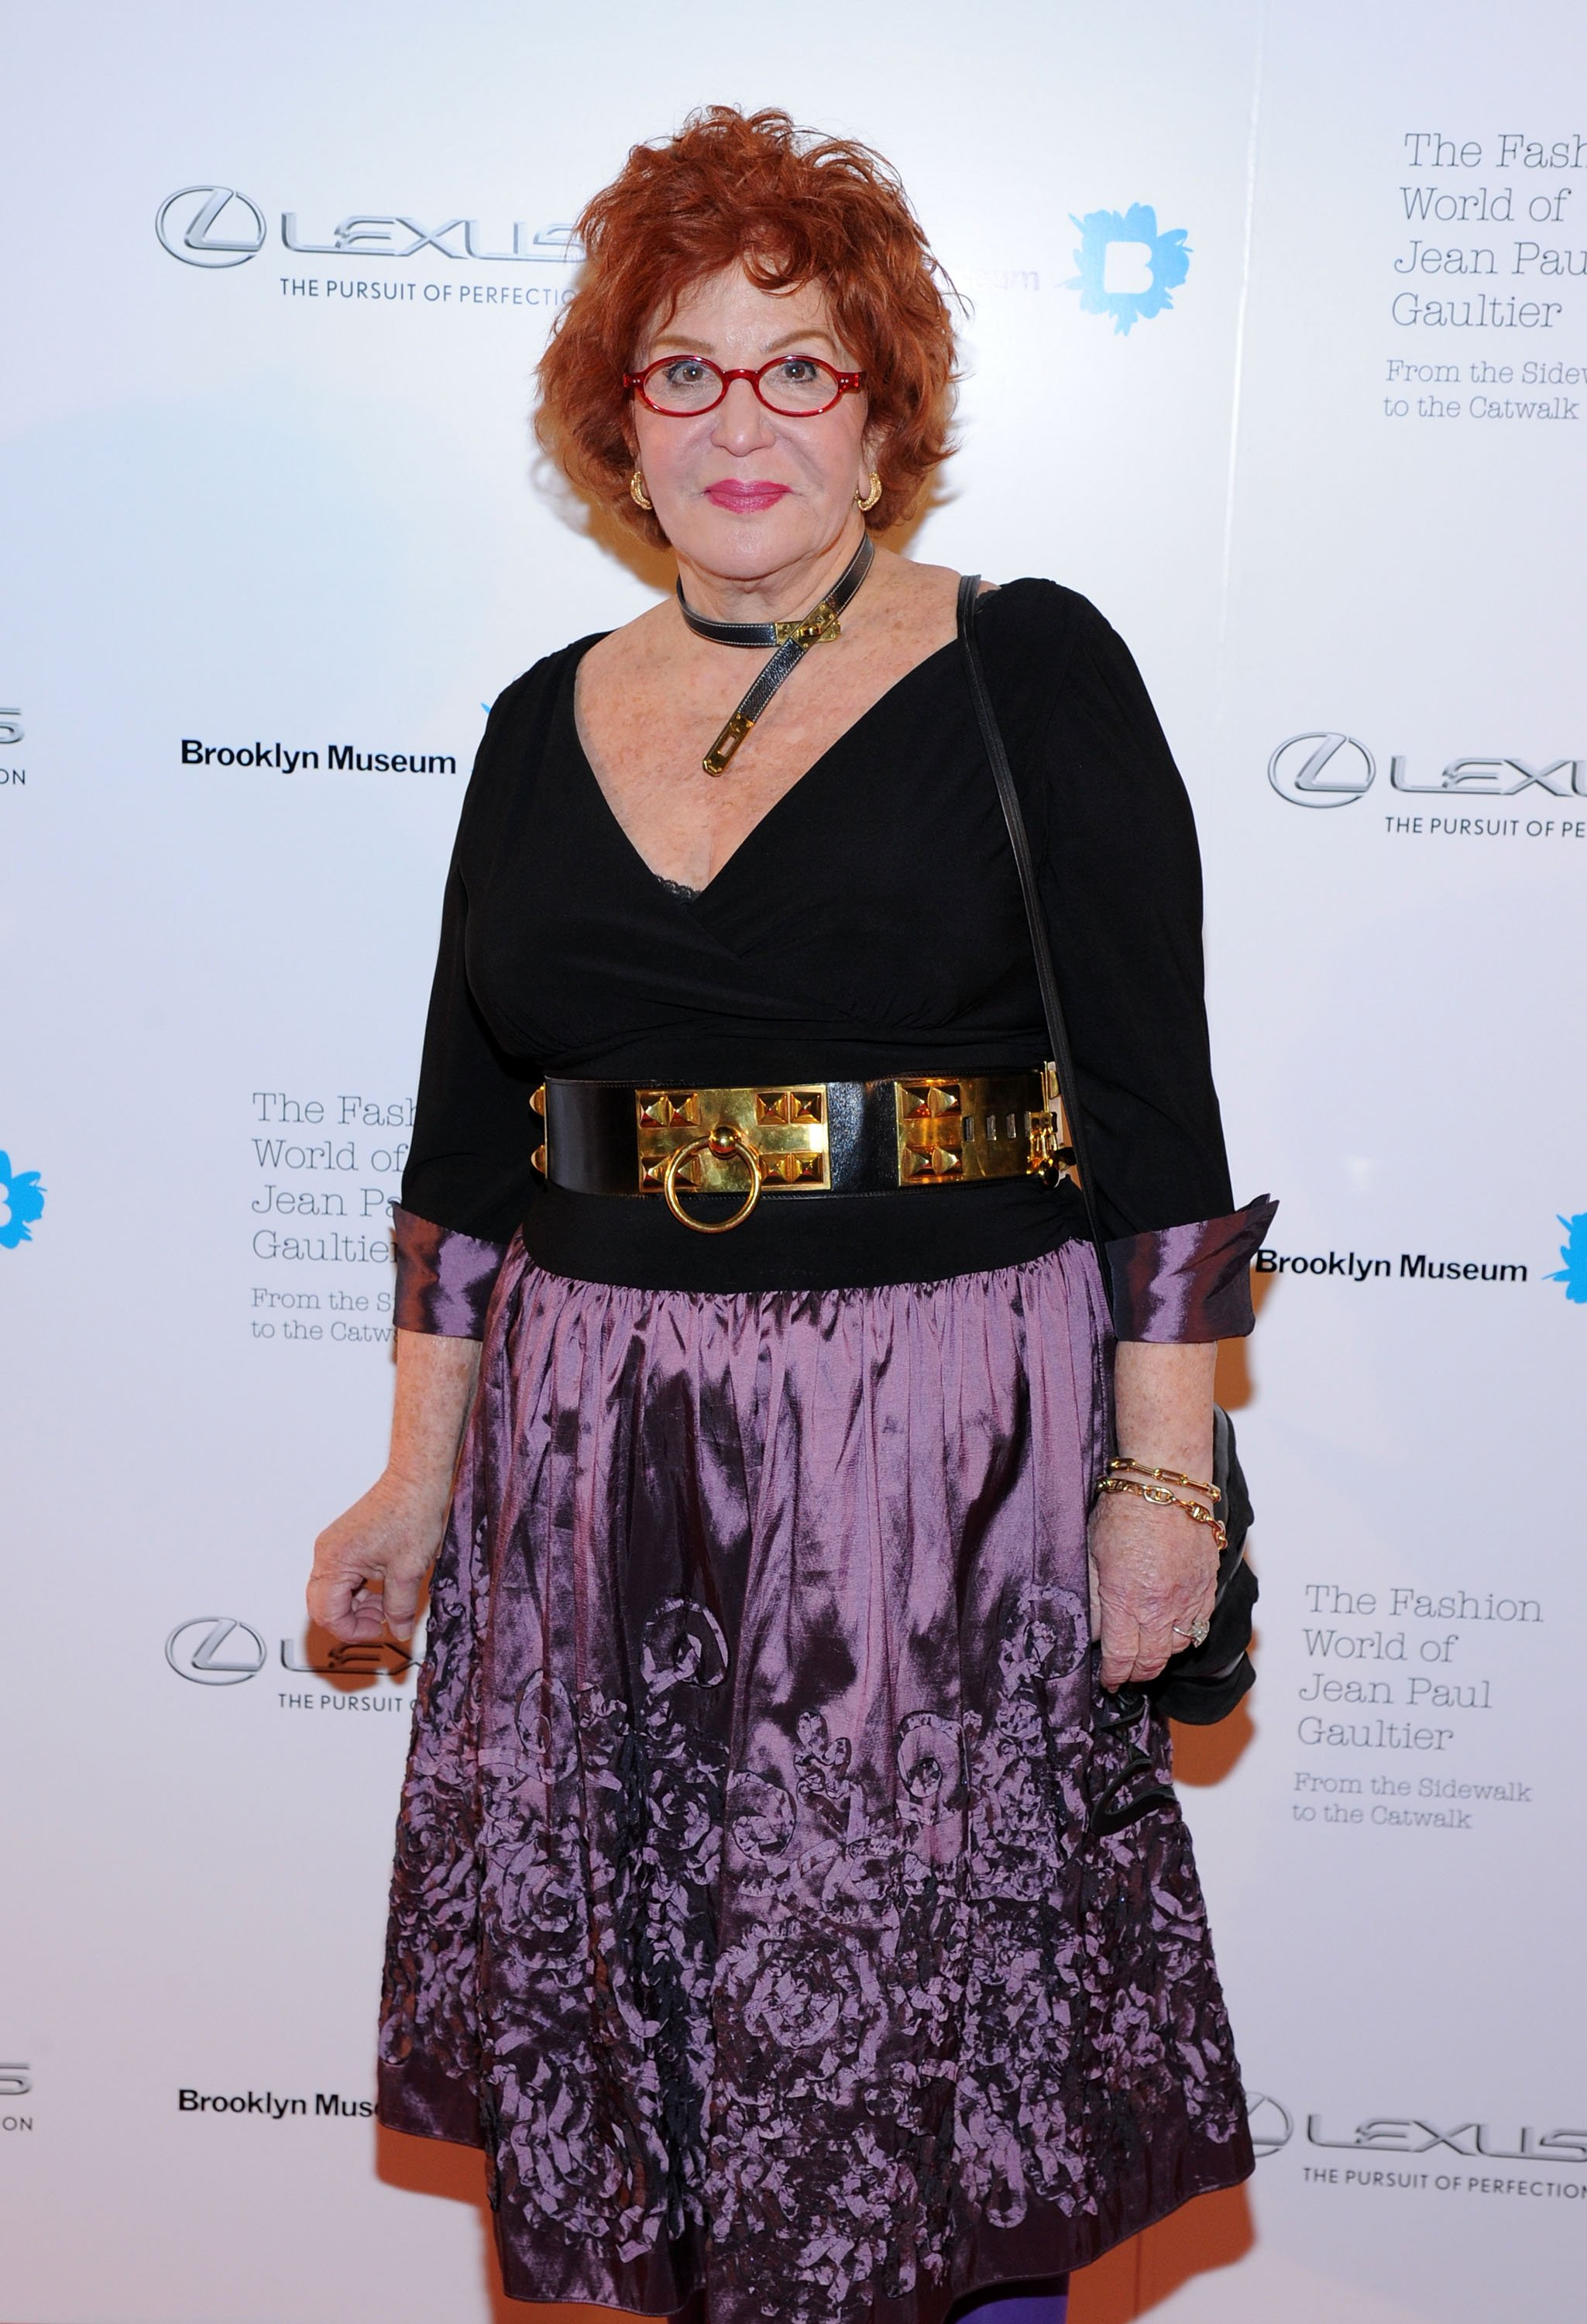 Sally Jesse Raphael attends the VIP reception  for The Fashion World of Jean Paul Gaultier: From the Sidewalk to the Catwalk on October 23, 2013, in New York City.   Source: Getty Images.